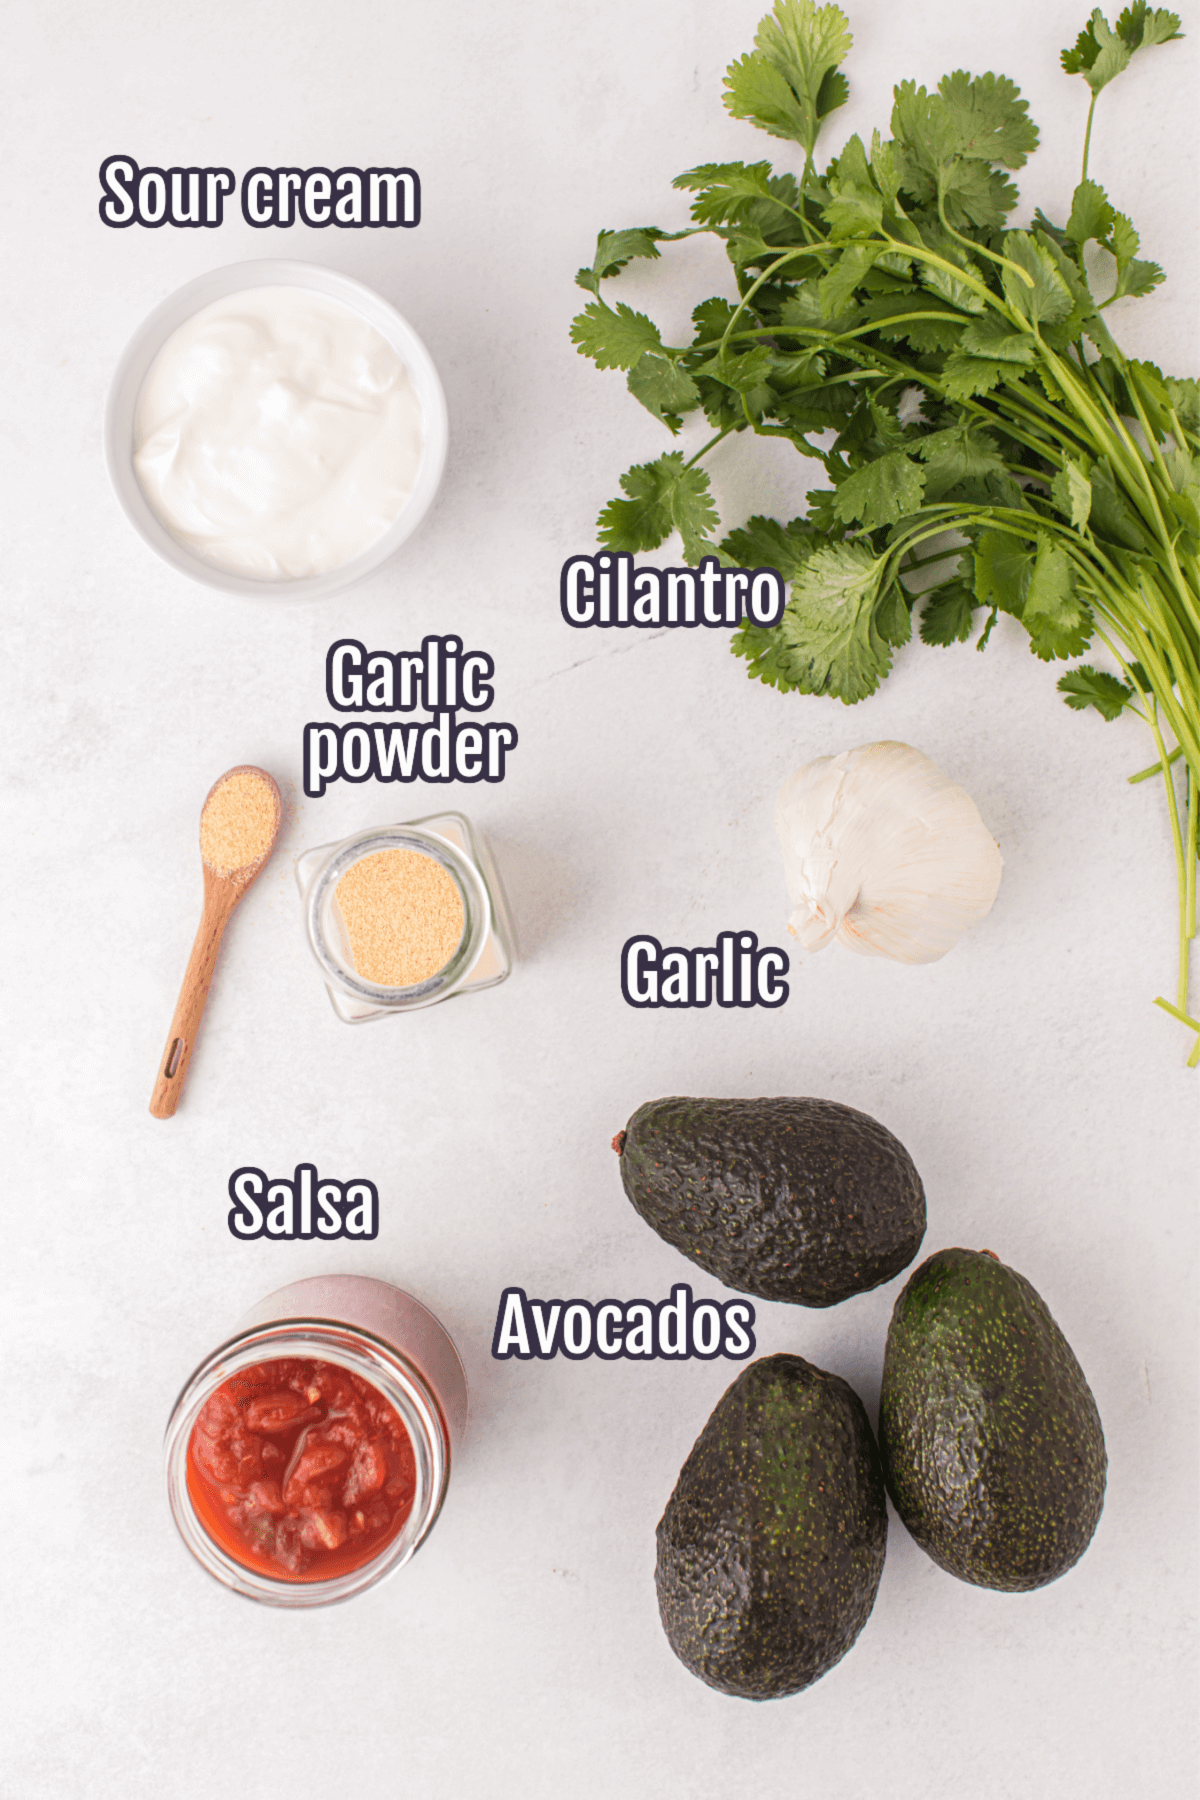 Ingredients needed for the Salsa Guacamole.